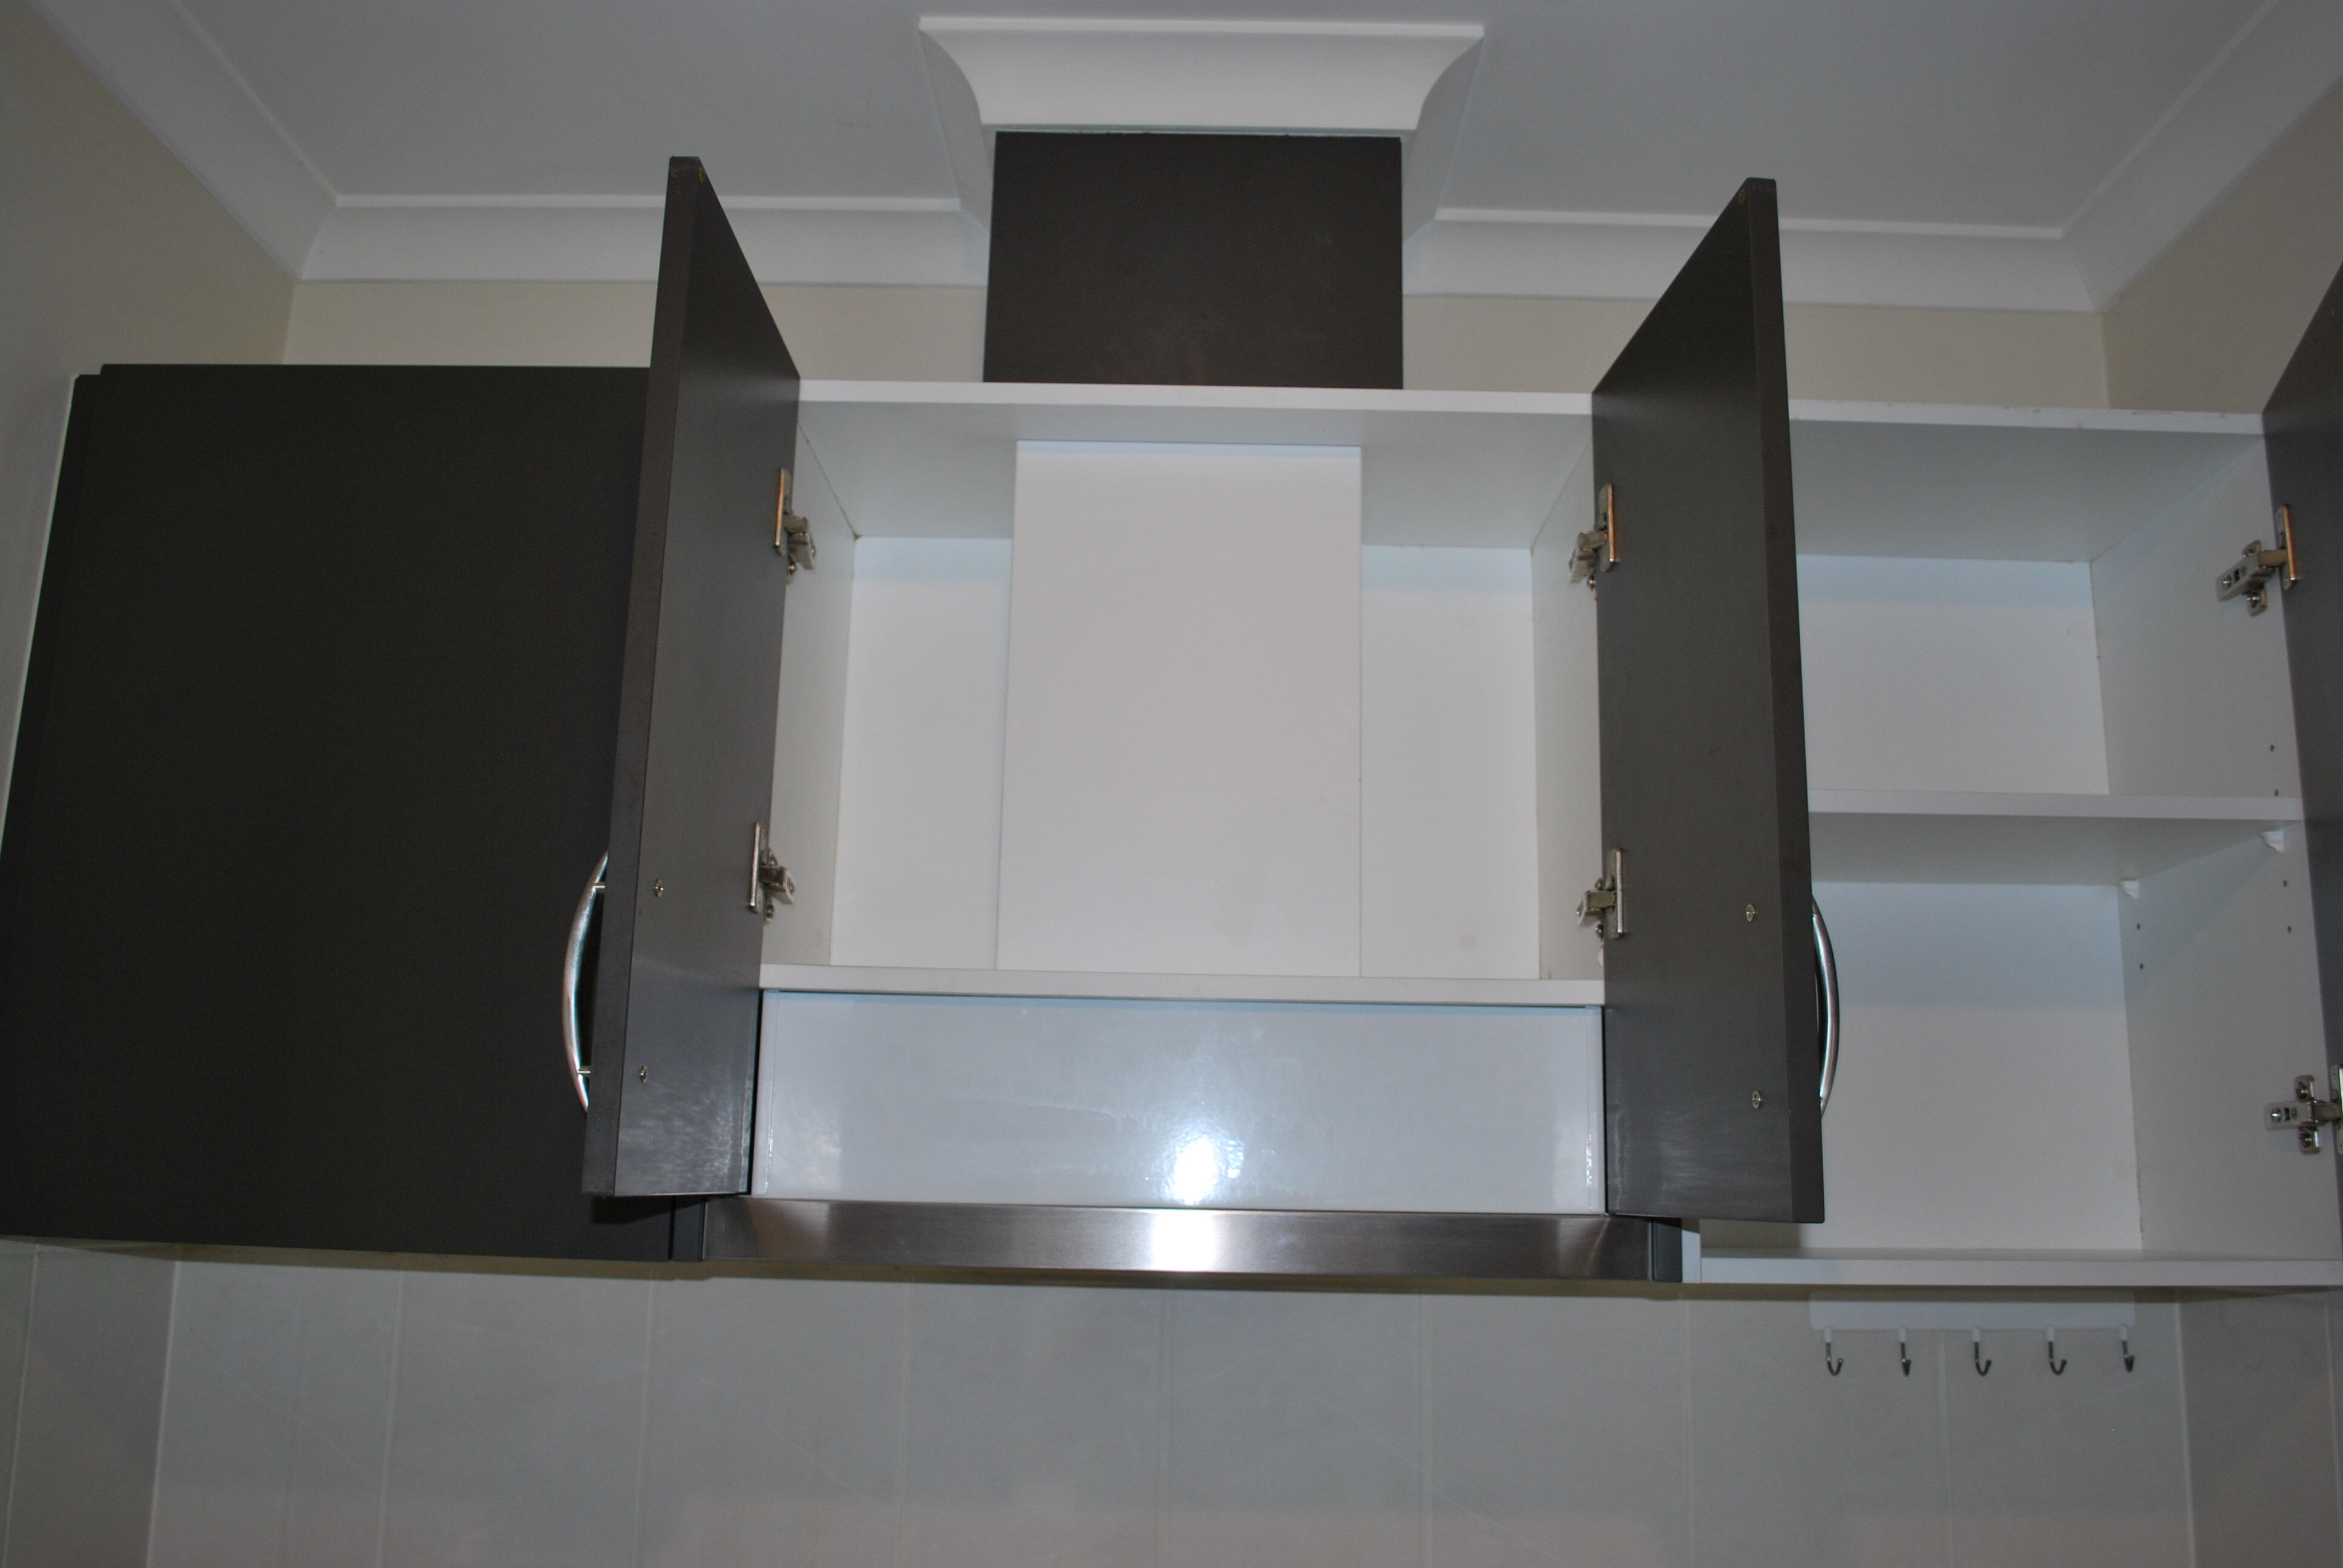 Install duct pipe to rangehood through the roof tiles 4